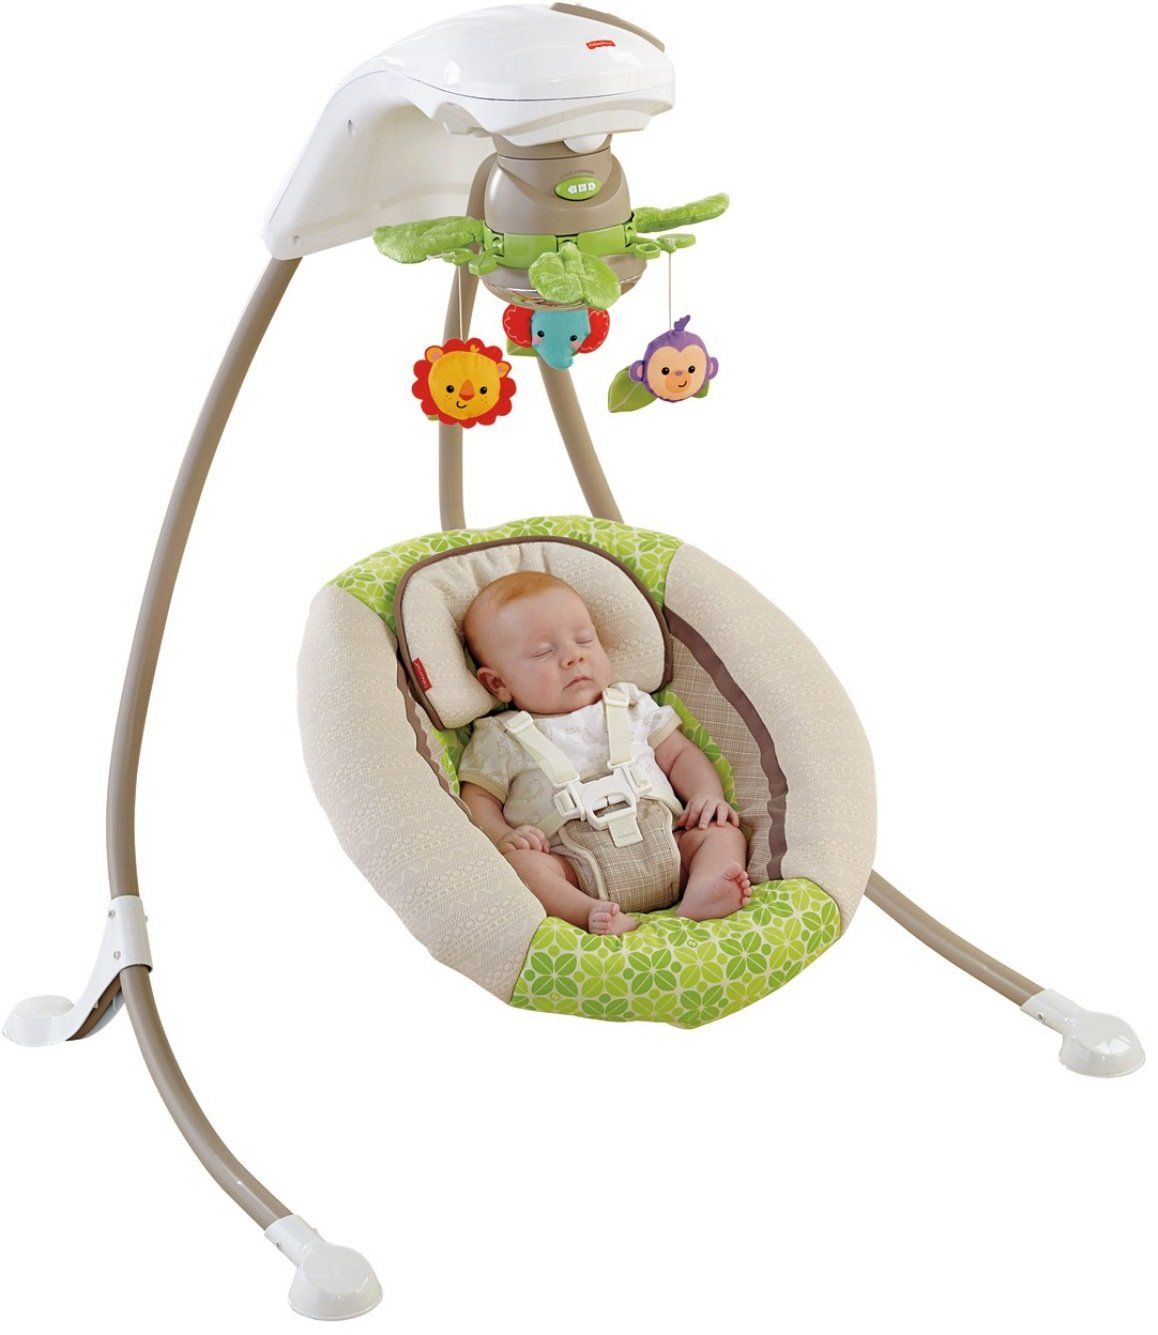 Amazon.com : Fisher-Price Rainforest Friends Deluxe Cradle 'n Swing :  Stationary Baby Swings : Baby